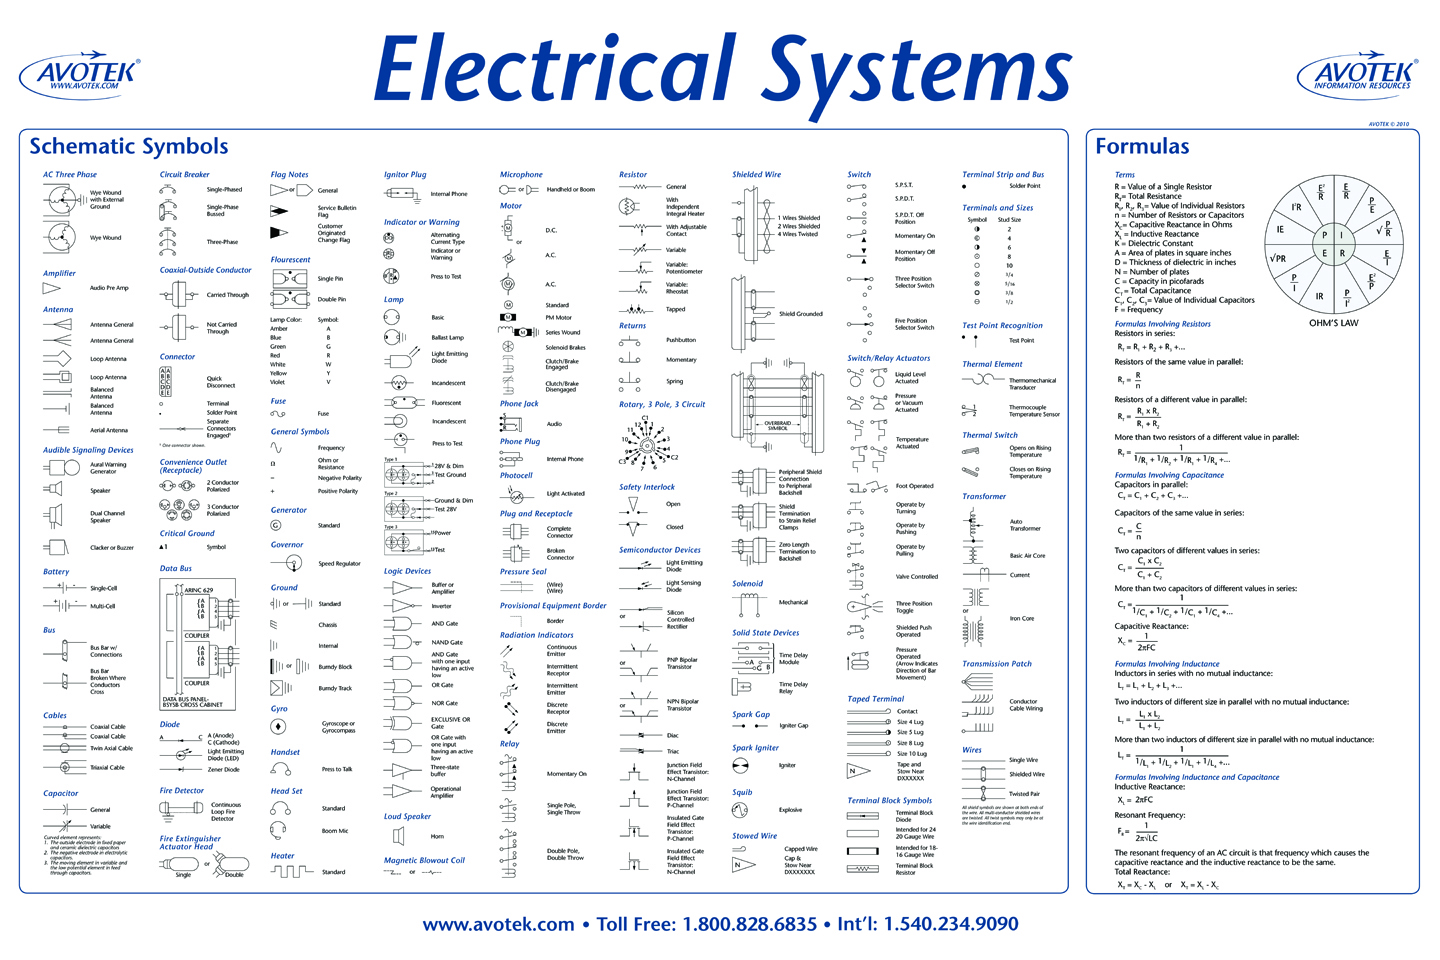 Wiring Diagram Symbols Aircraft